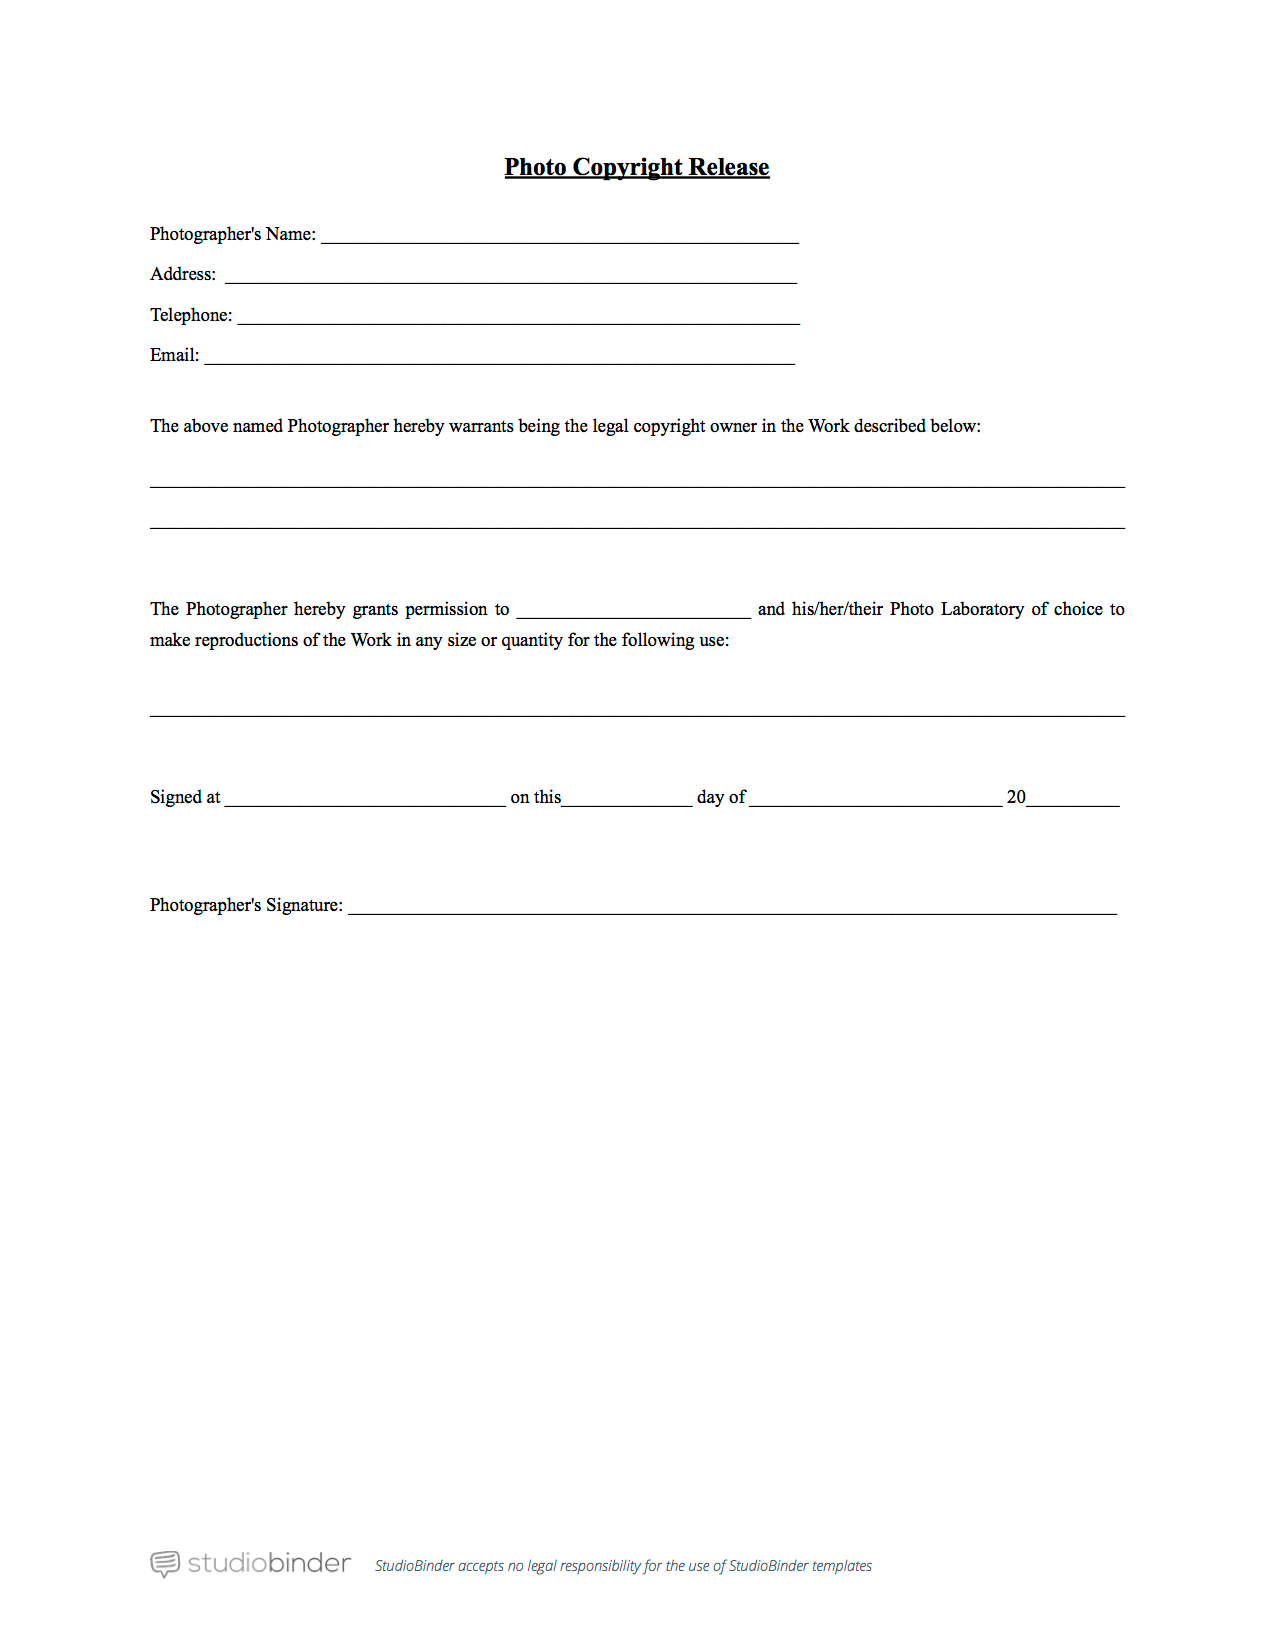 general release of information form template - why you should have a photo release form template